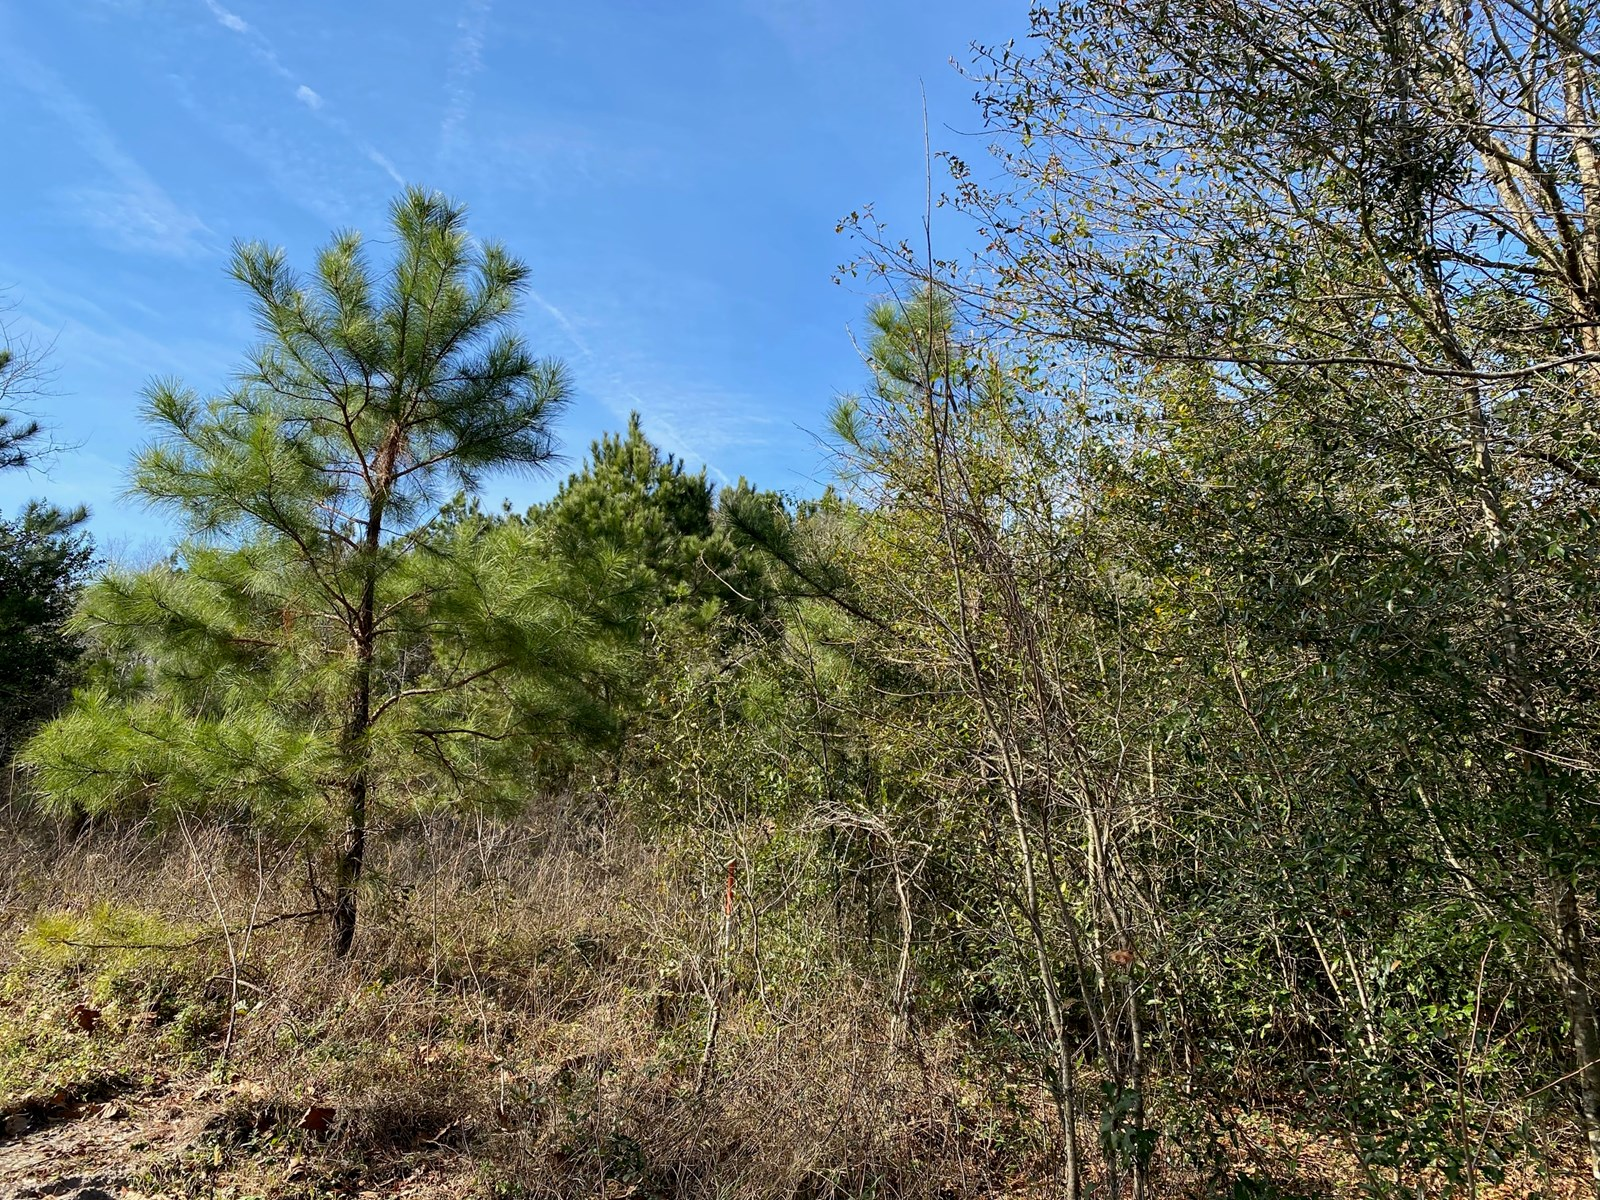 LOT 25 & 26 SUWANNEE BREEZE SUBDIVISION LIVE OAK FL